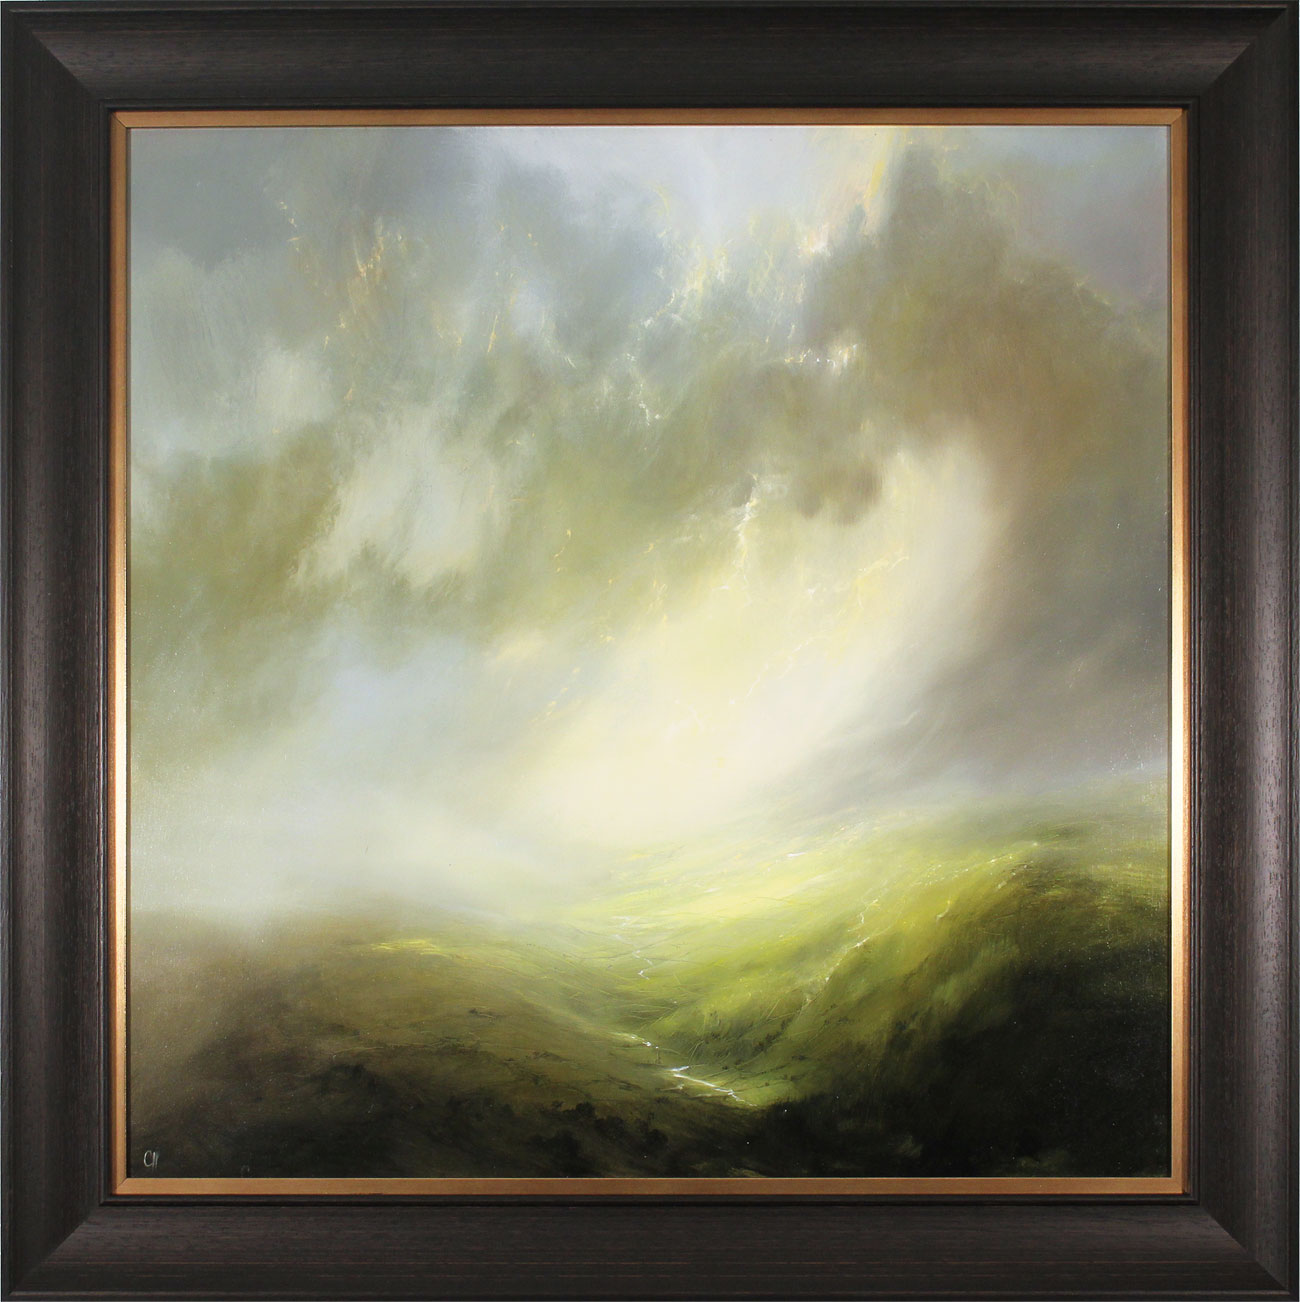 Clare Haley, Original oil painting on panel, Valley of Light. Click to enlarge